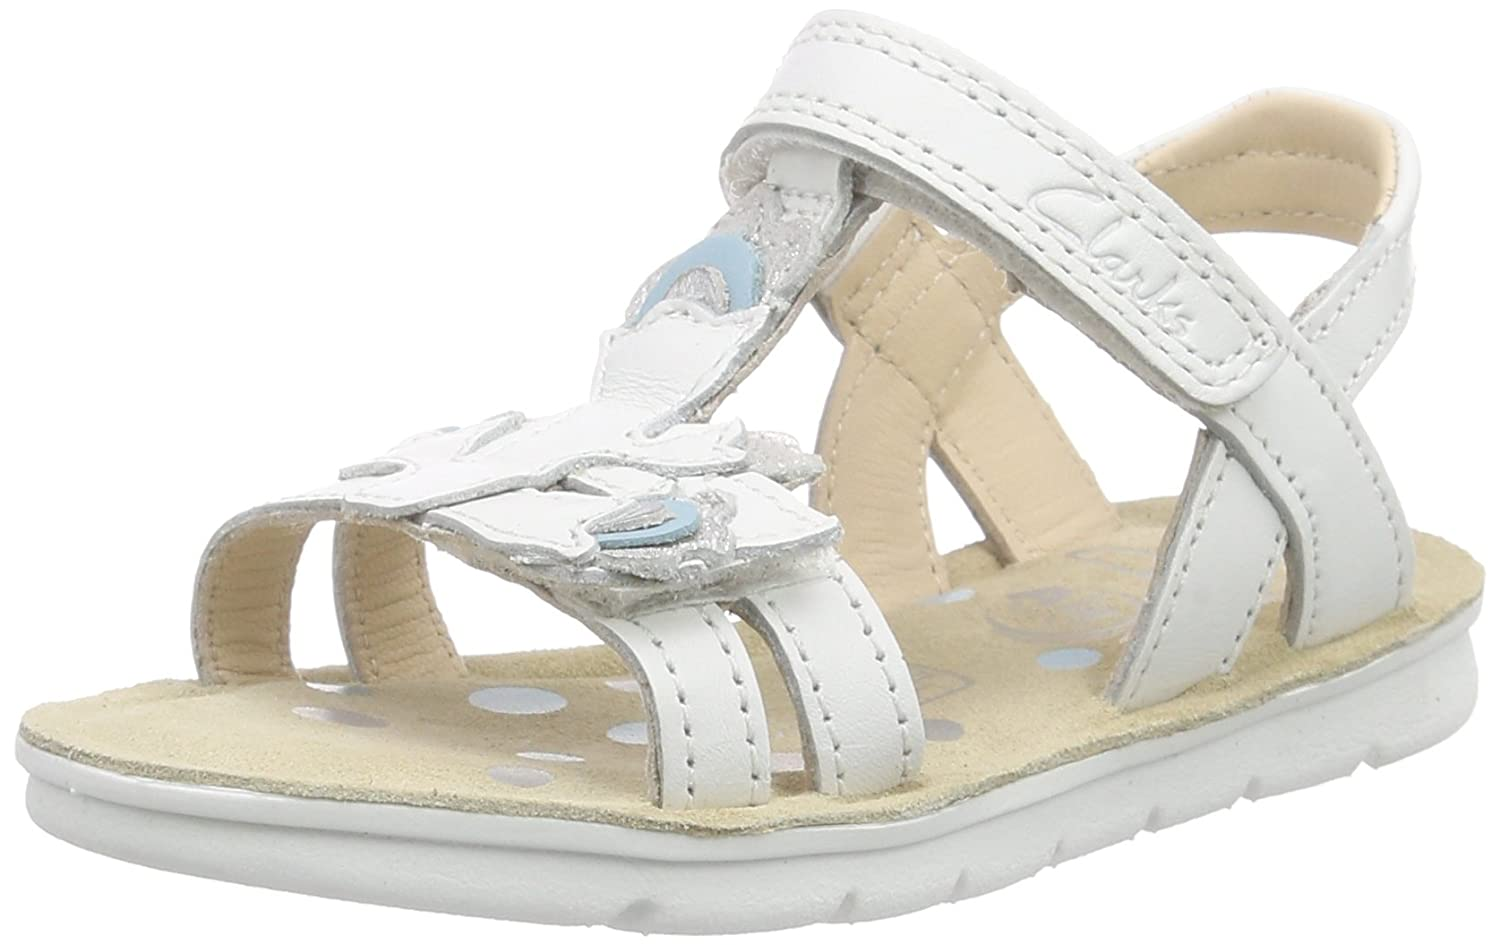 836707fea68af0 Clarks Mimogracie Inf